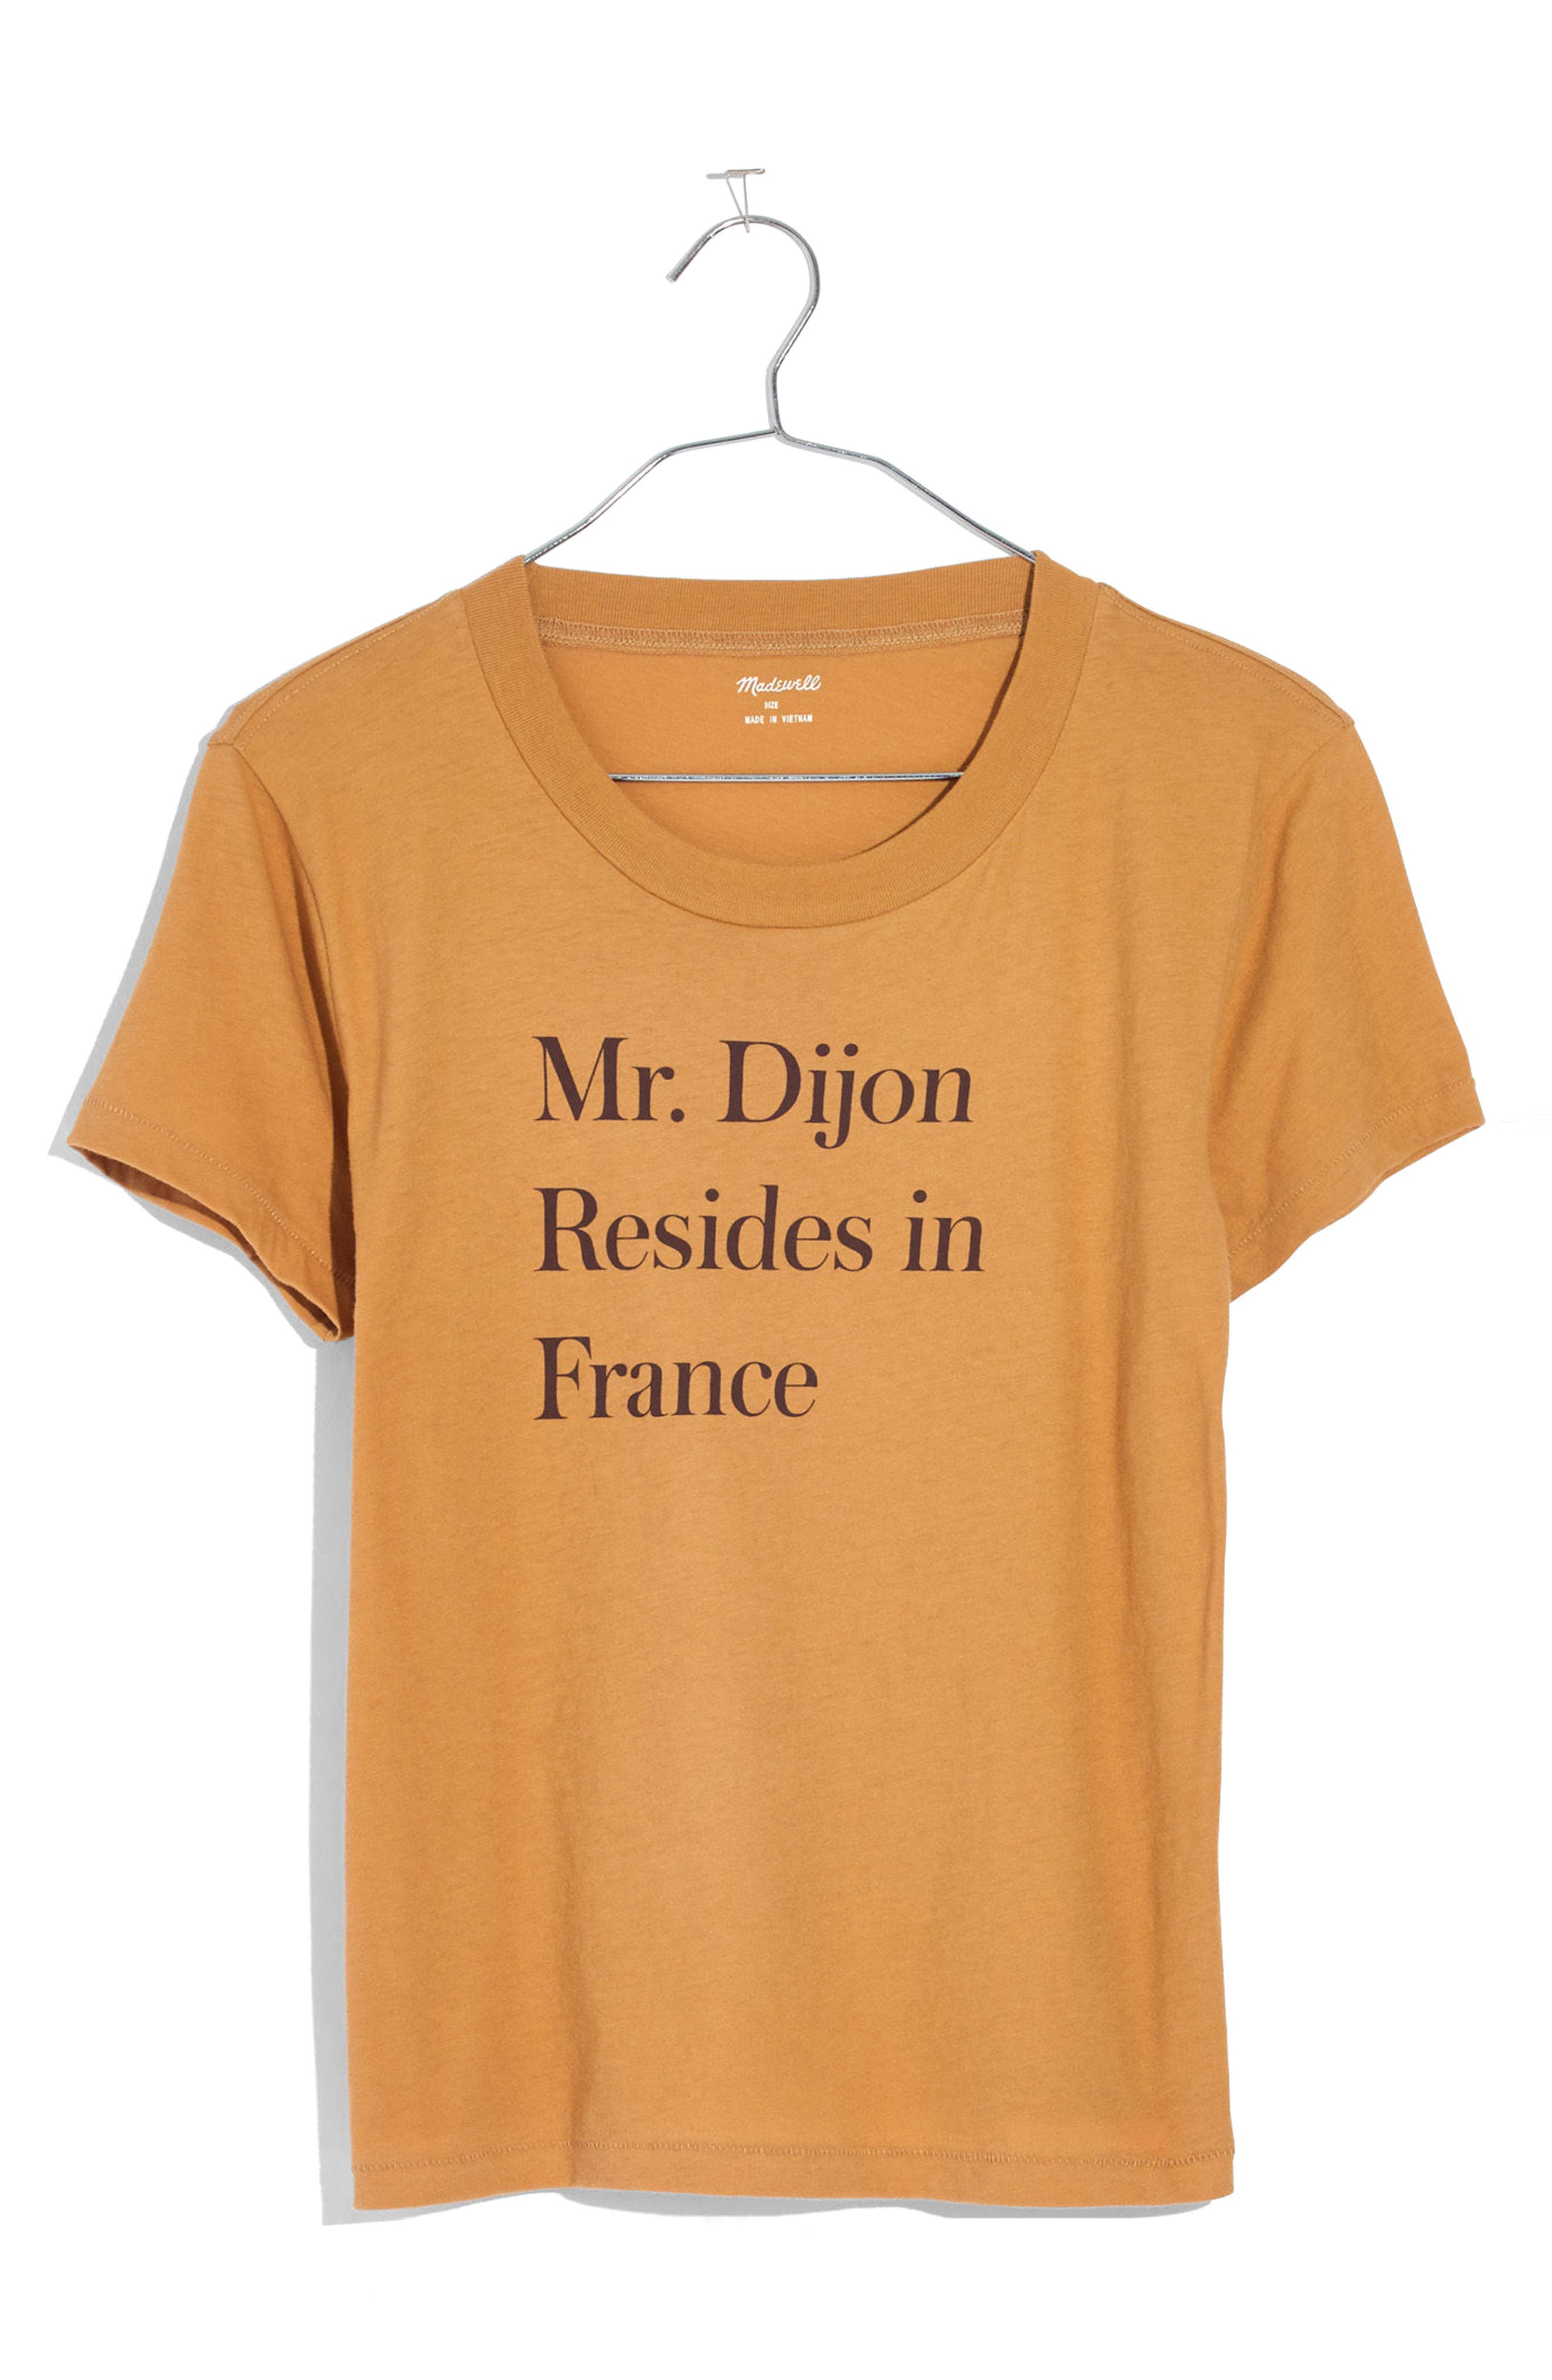 Mr. Dijon Graphic Tee,                             Main thumbnail 1, color,                             Vintage Gold